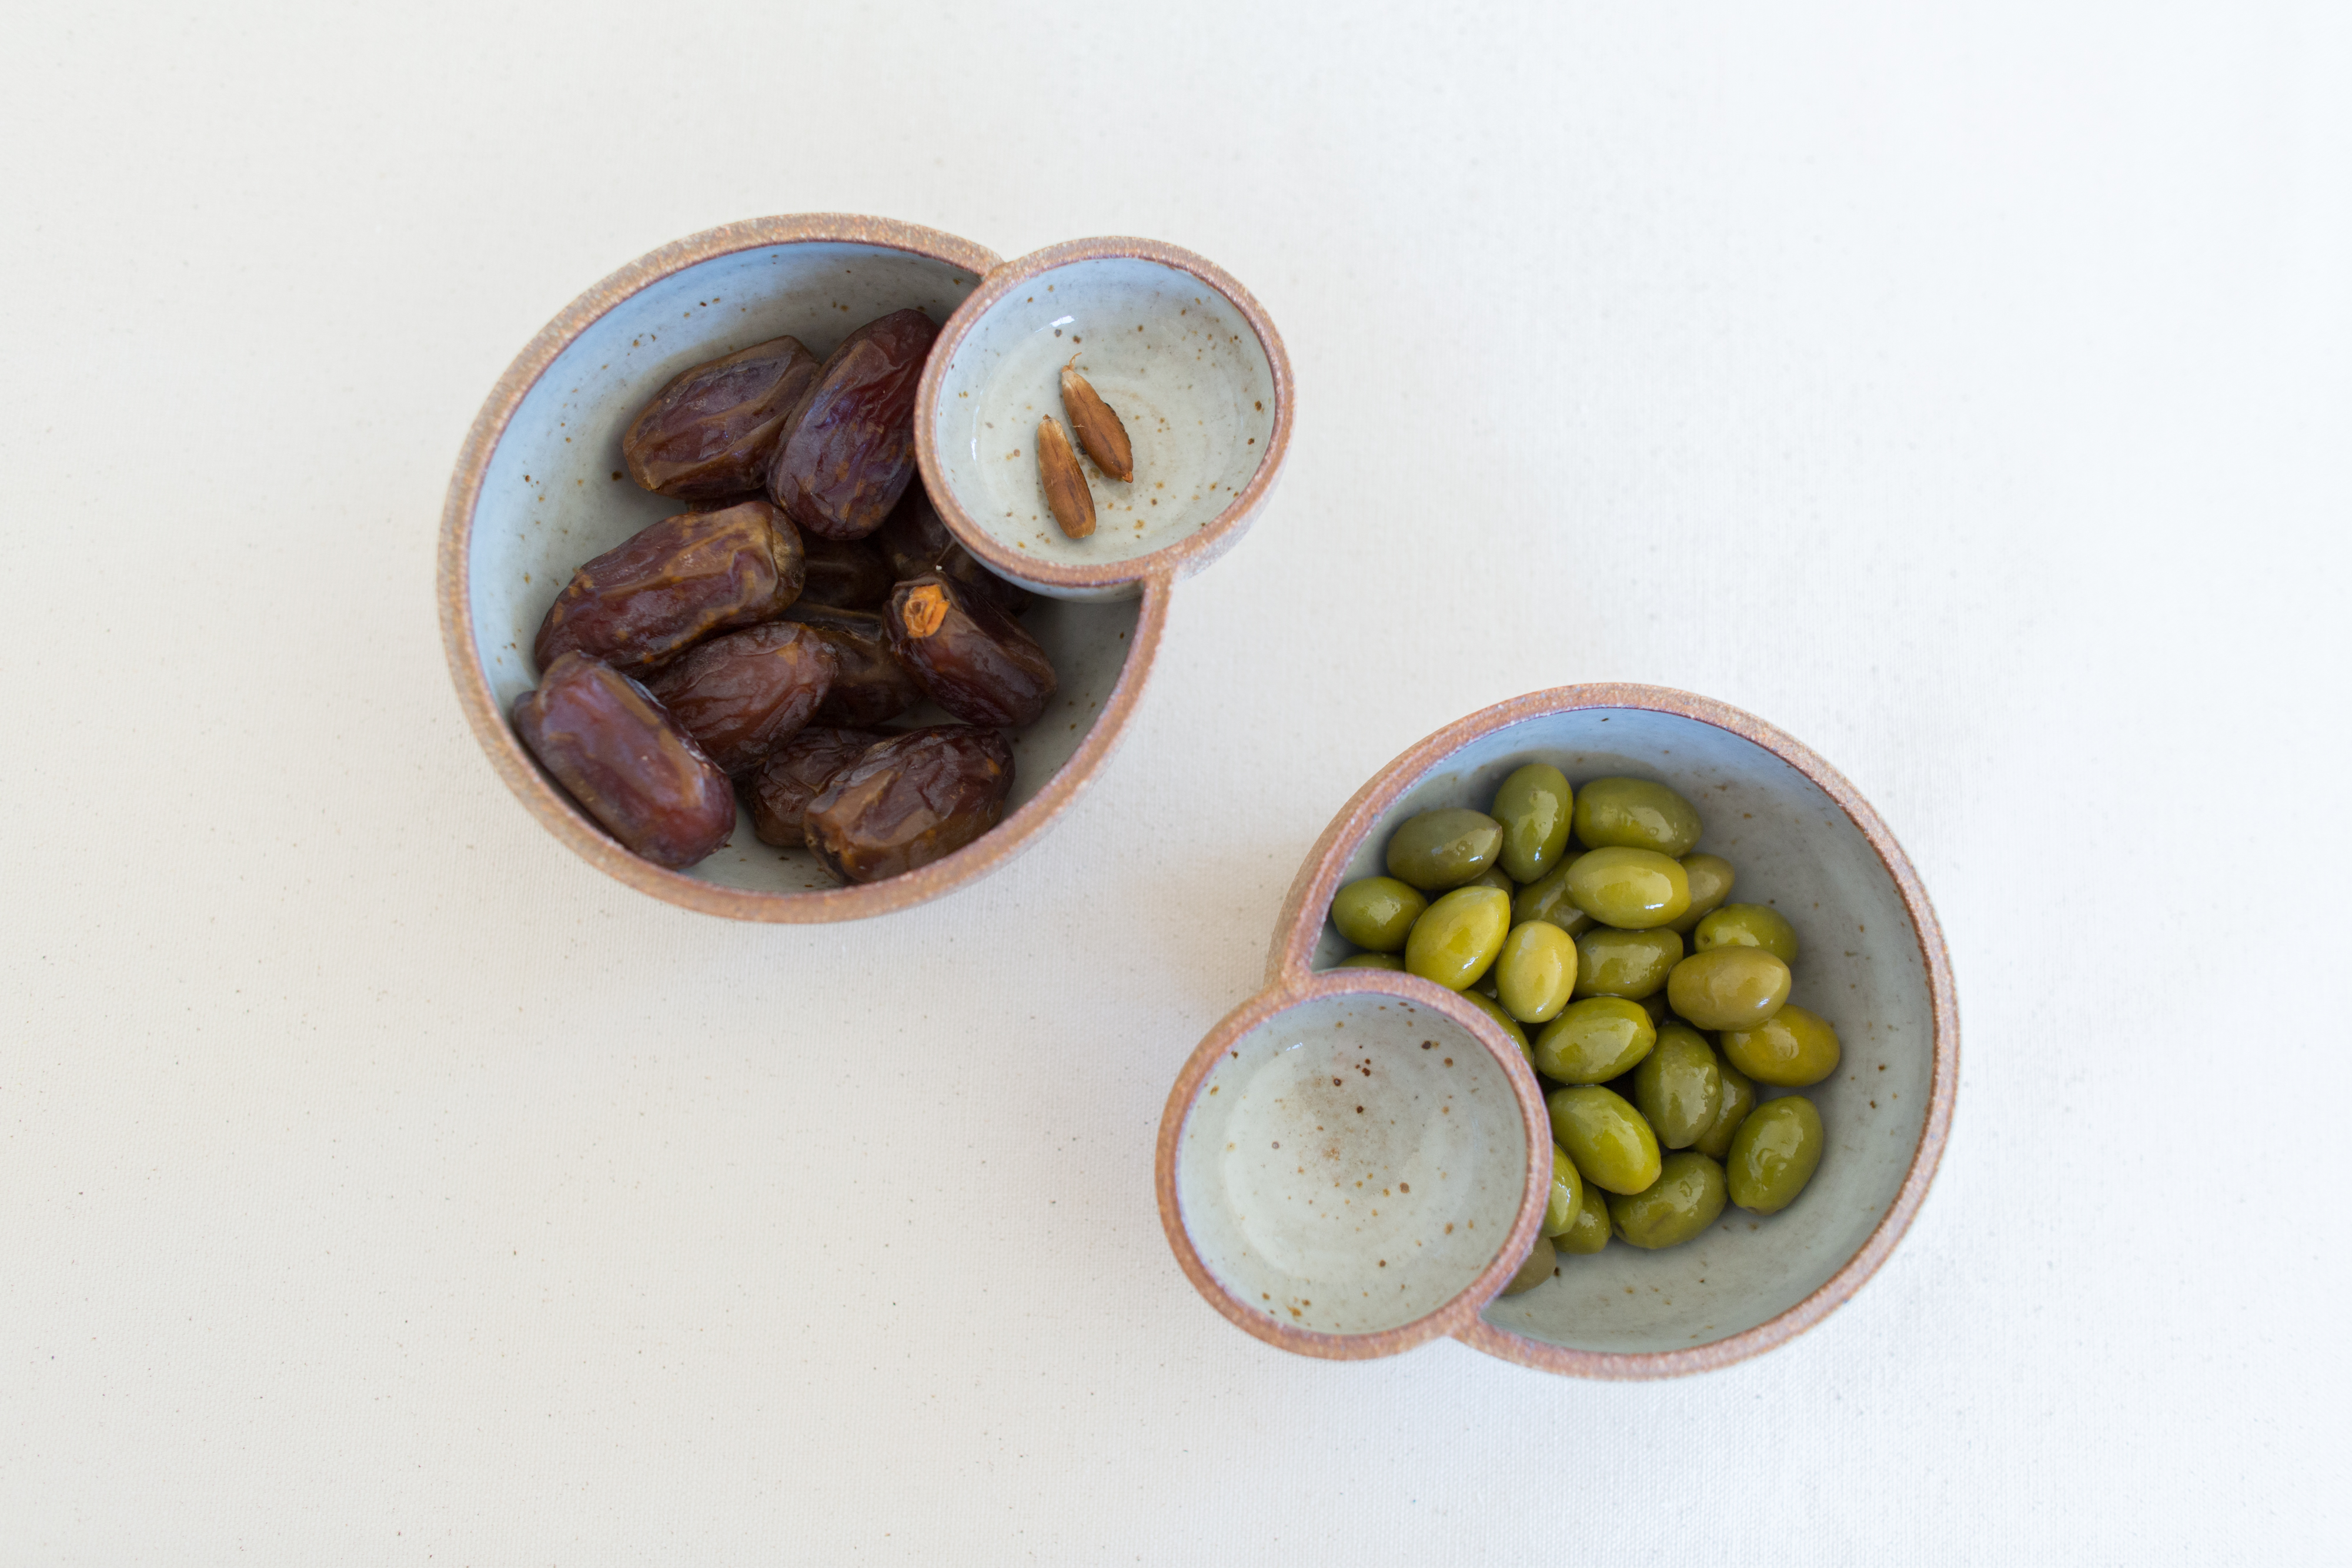 ceramic food bowls with olives and dates